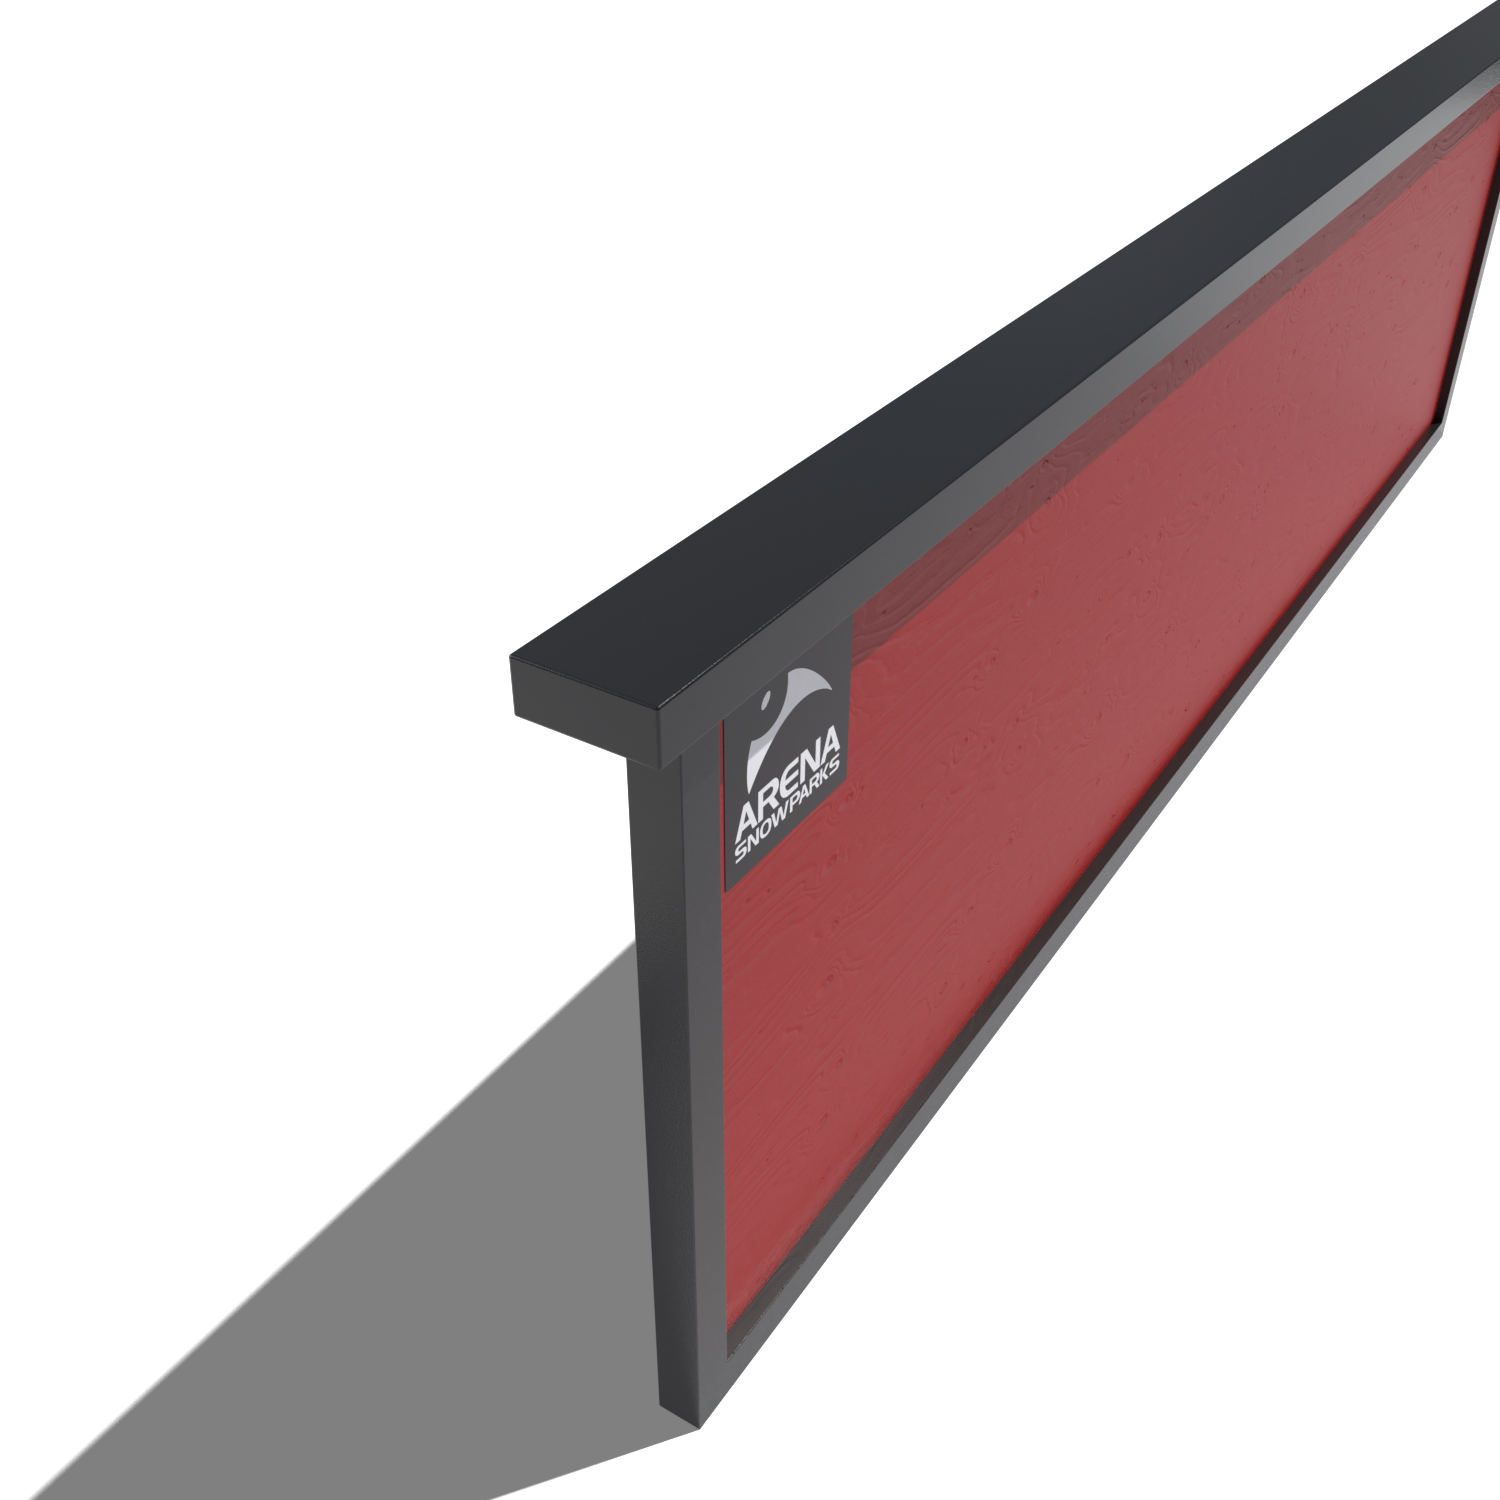 ASP - Sliding Surfaces 03 - Flat Bar.png